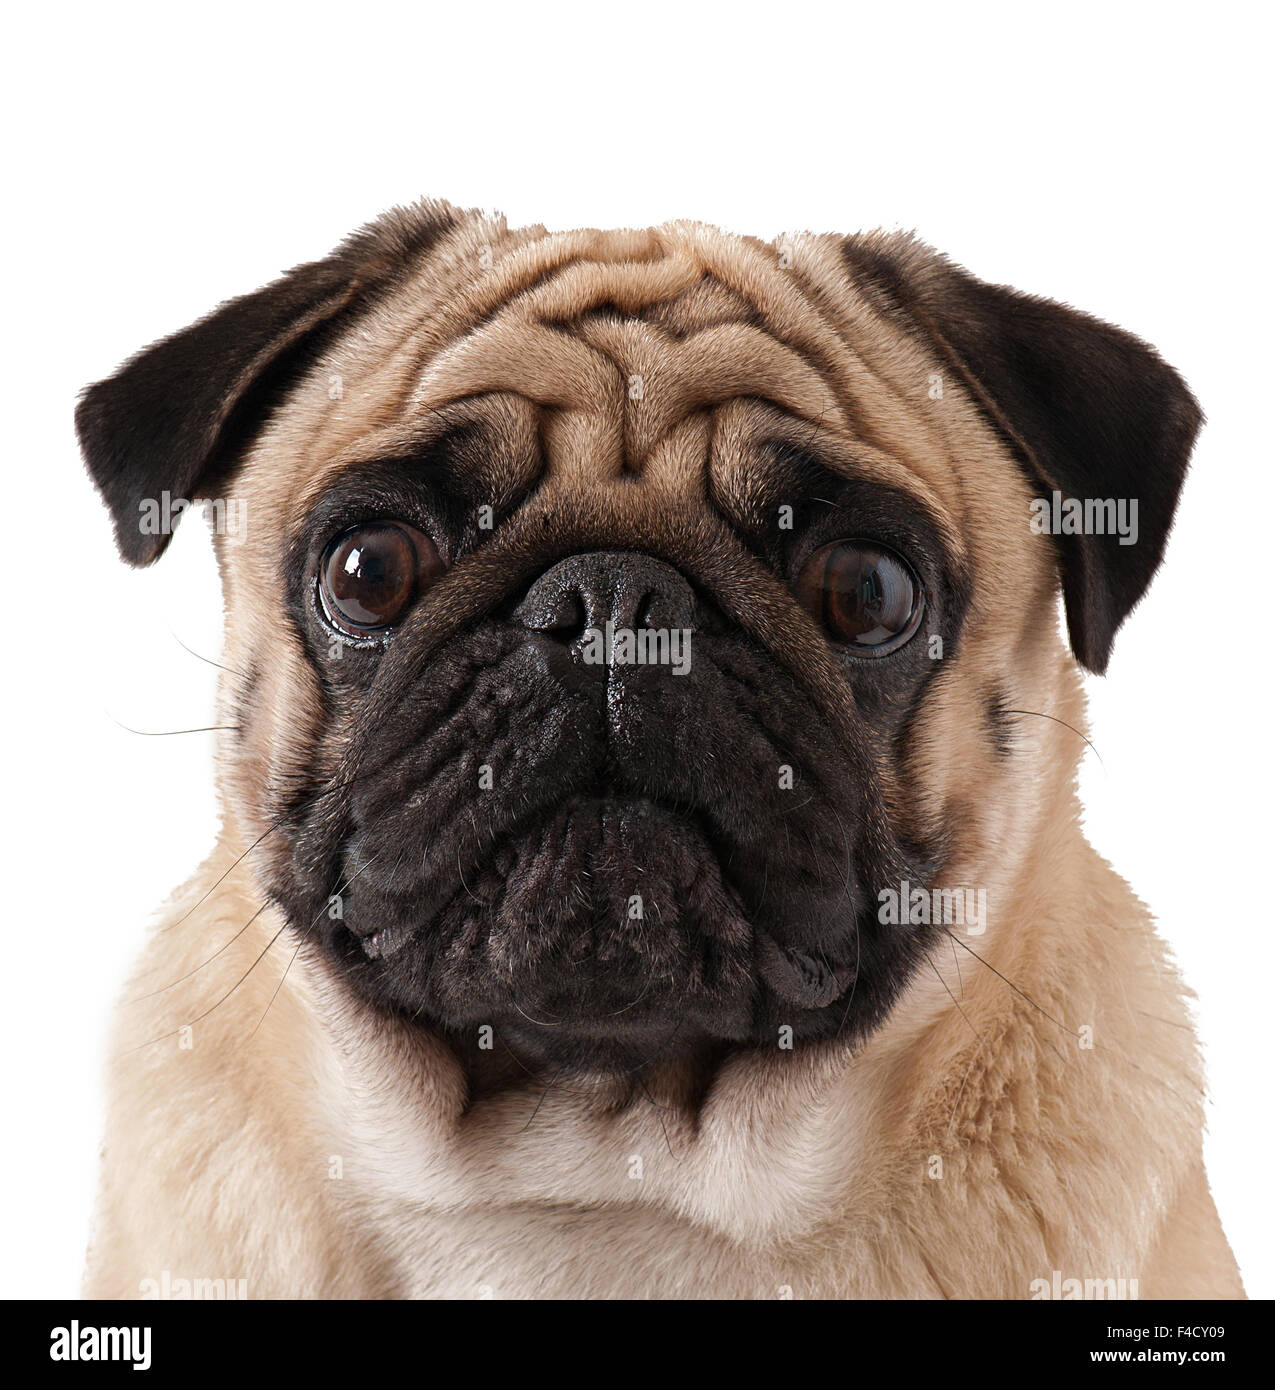 Pug dog isolated on a white background - Stock Image